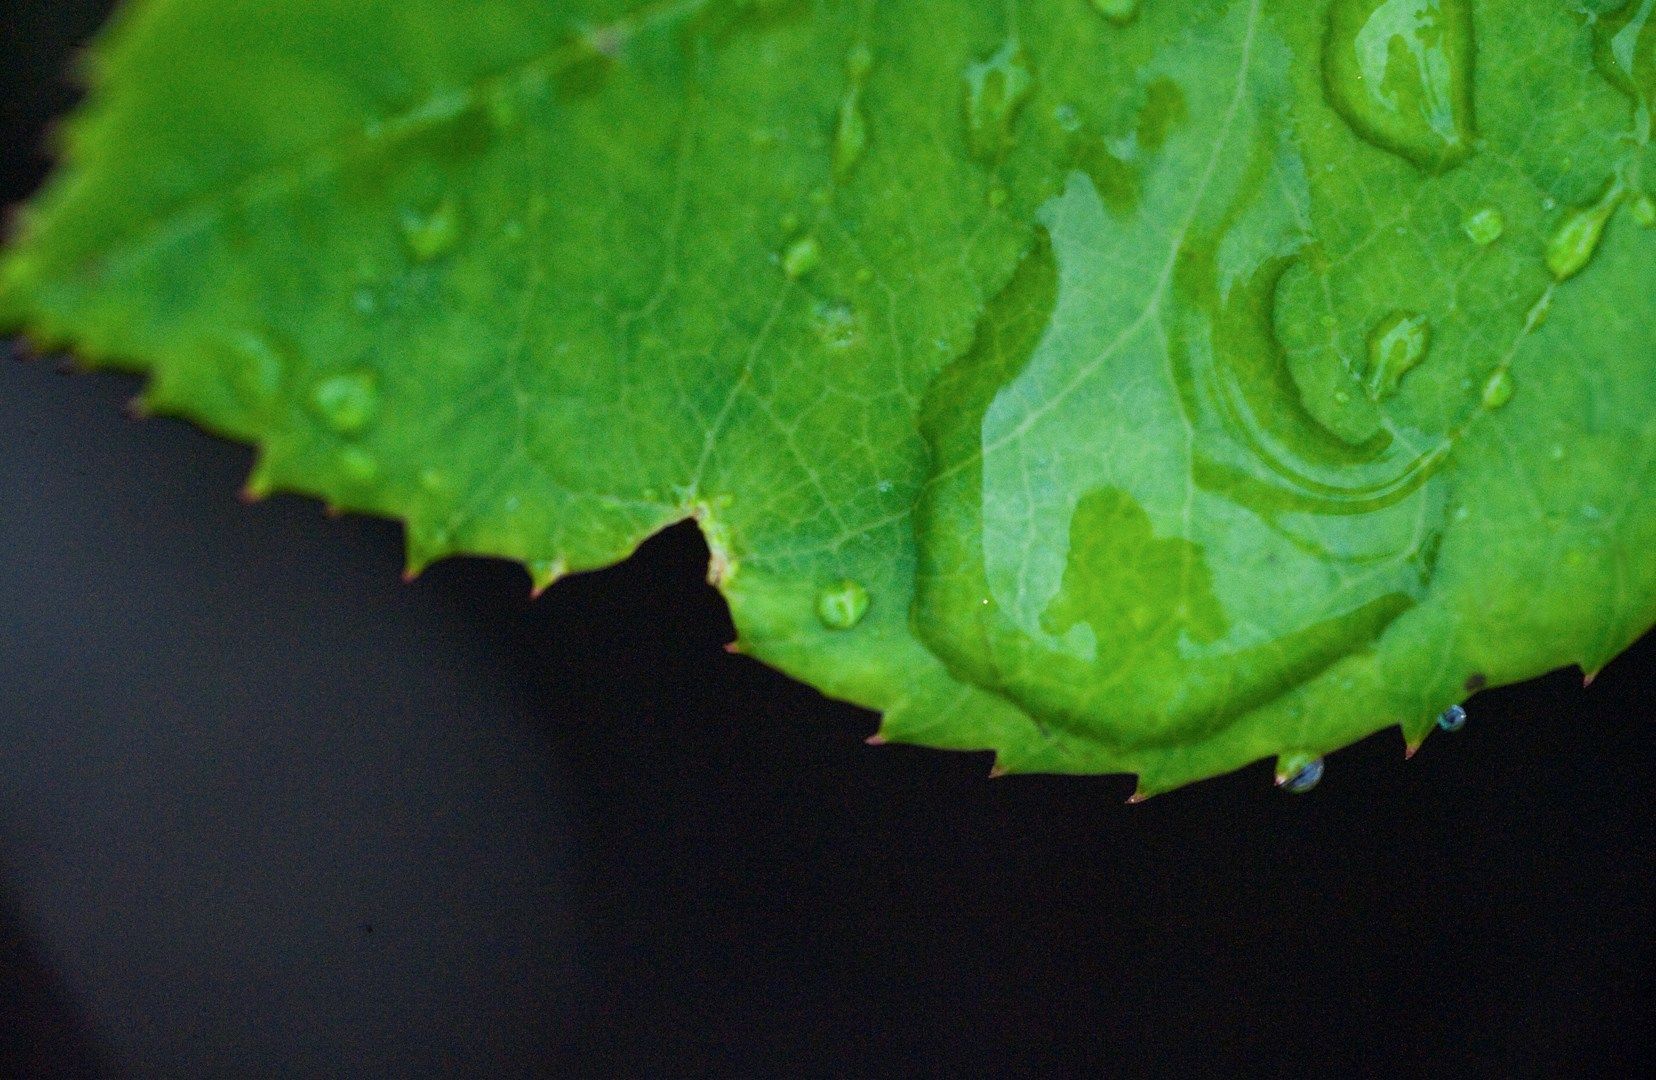 horiz_leaf with water drop